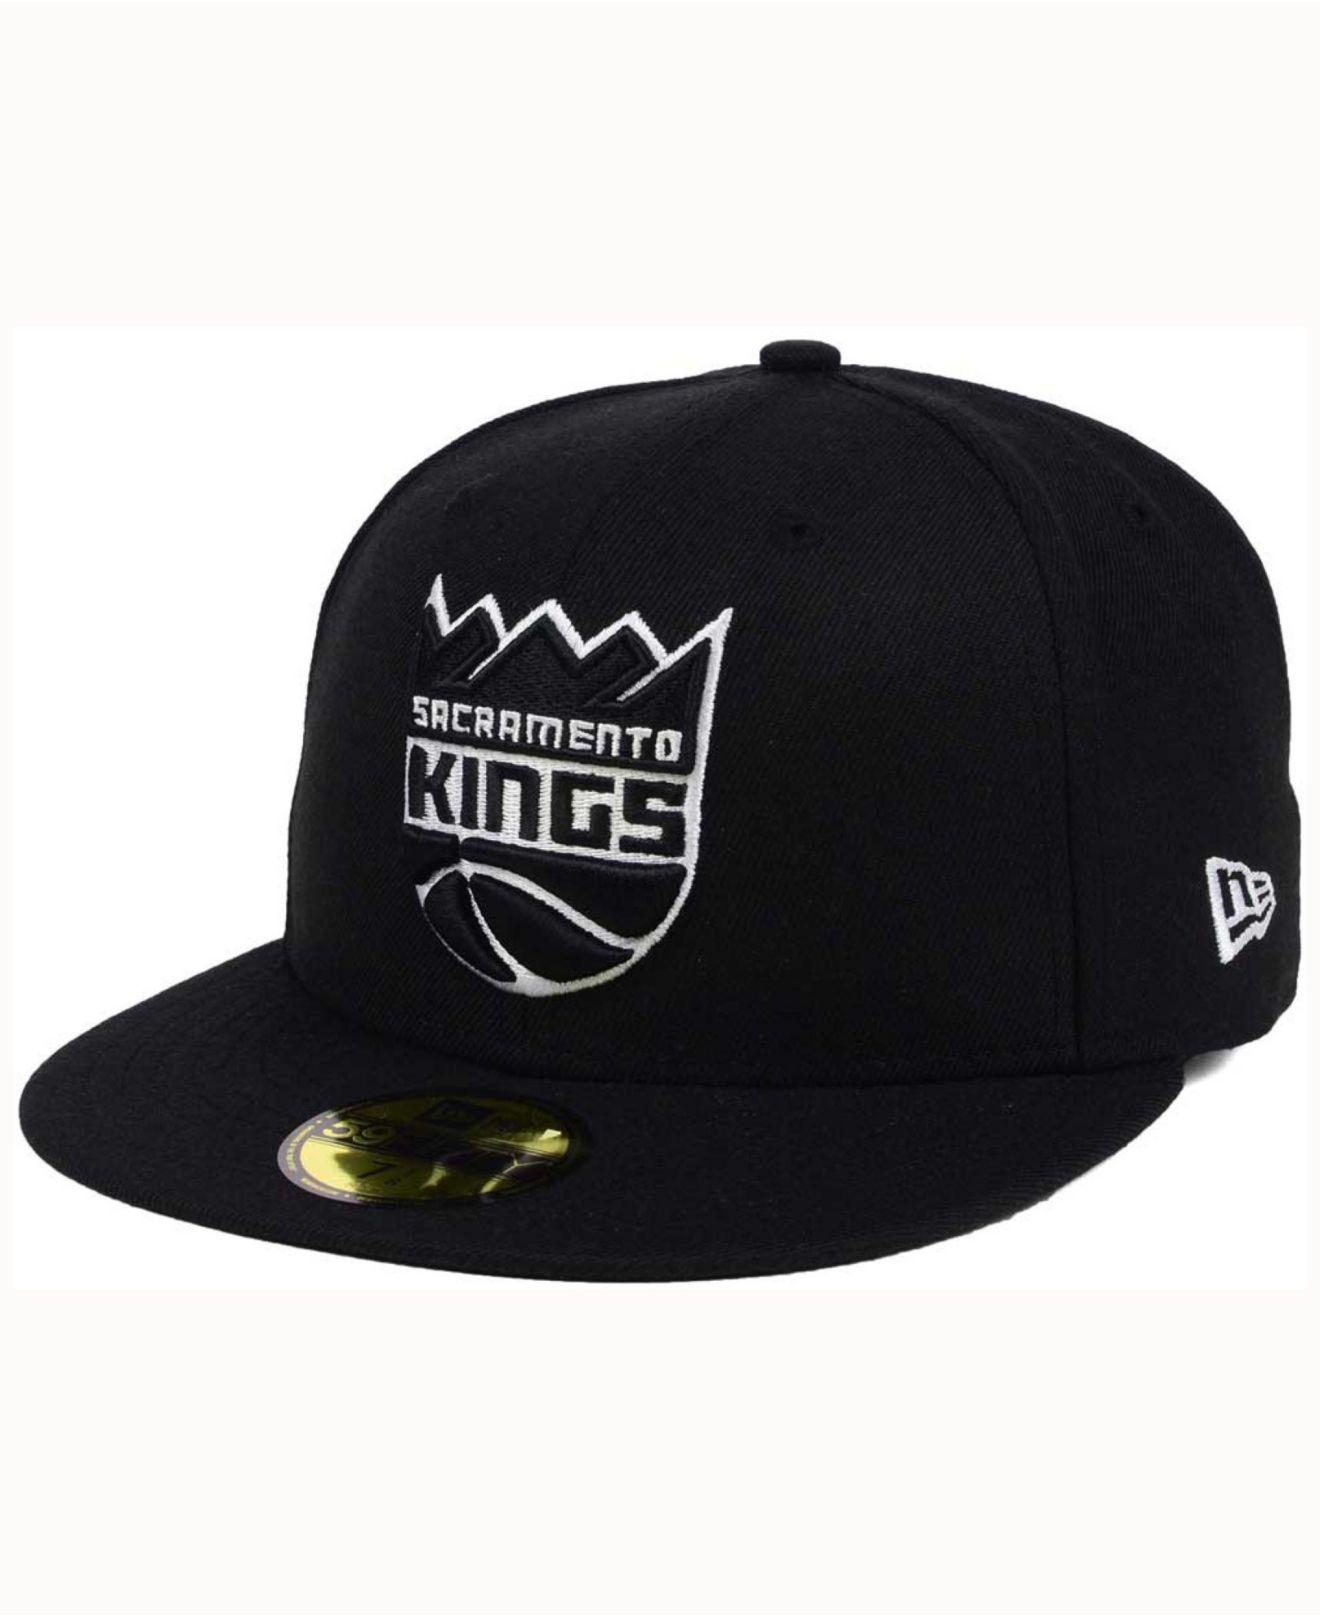 wholesale dealer 6438d f5d8d cheap ktz sacramento kings black white 59fifty cap for men lyst. view  fullscreen e183b 705a3